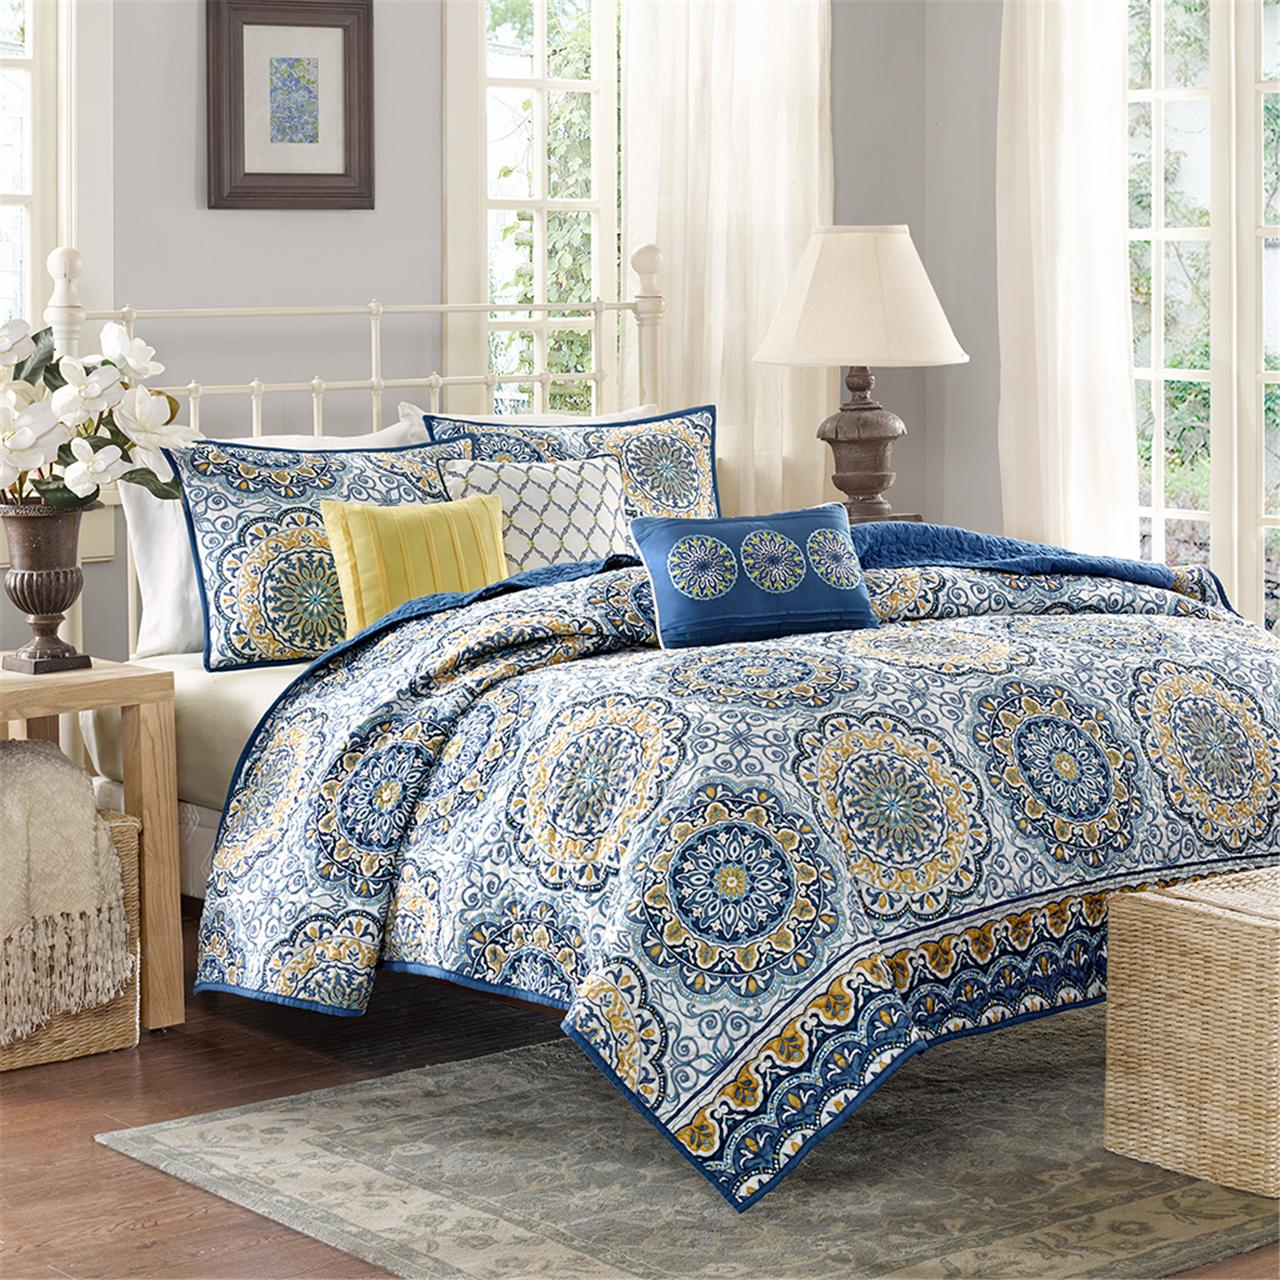 Madison Park - Tangiers 6 Piece Reversible Coverlet Set - Blue - King/Cal King